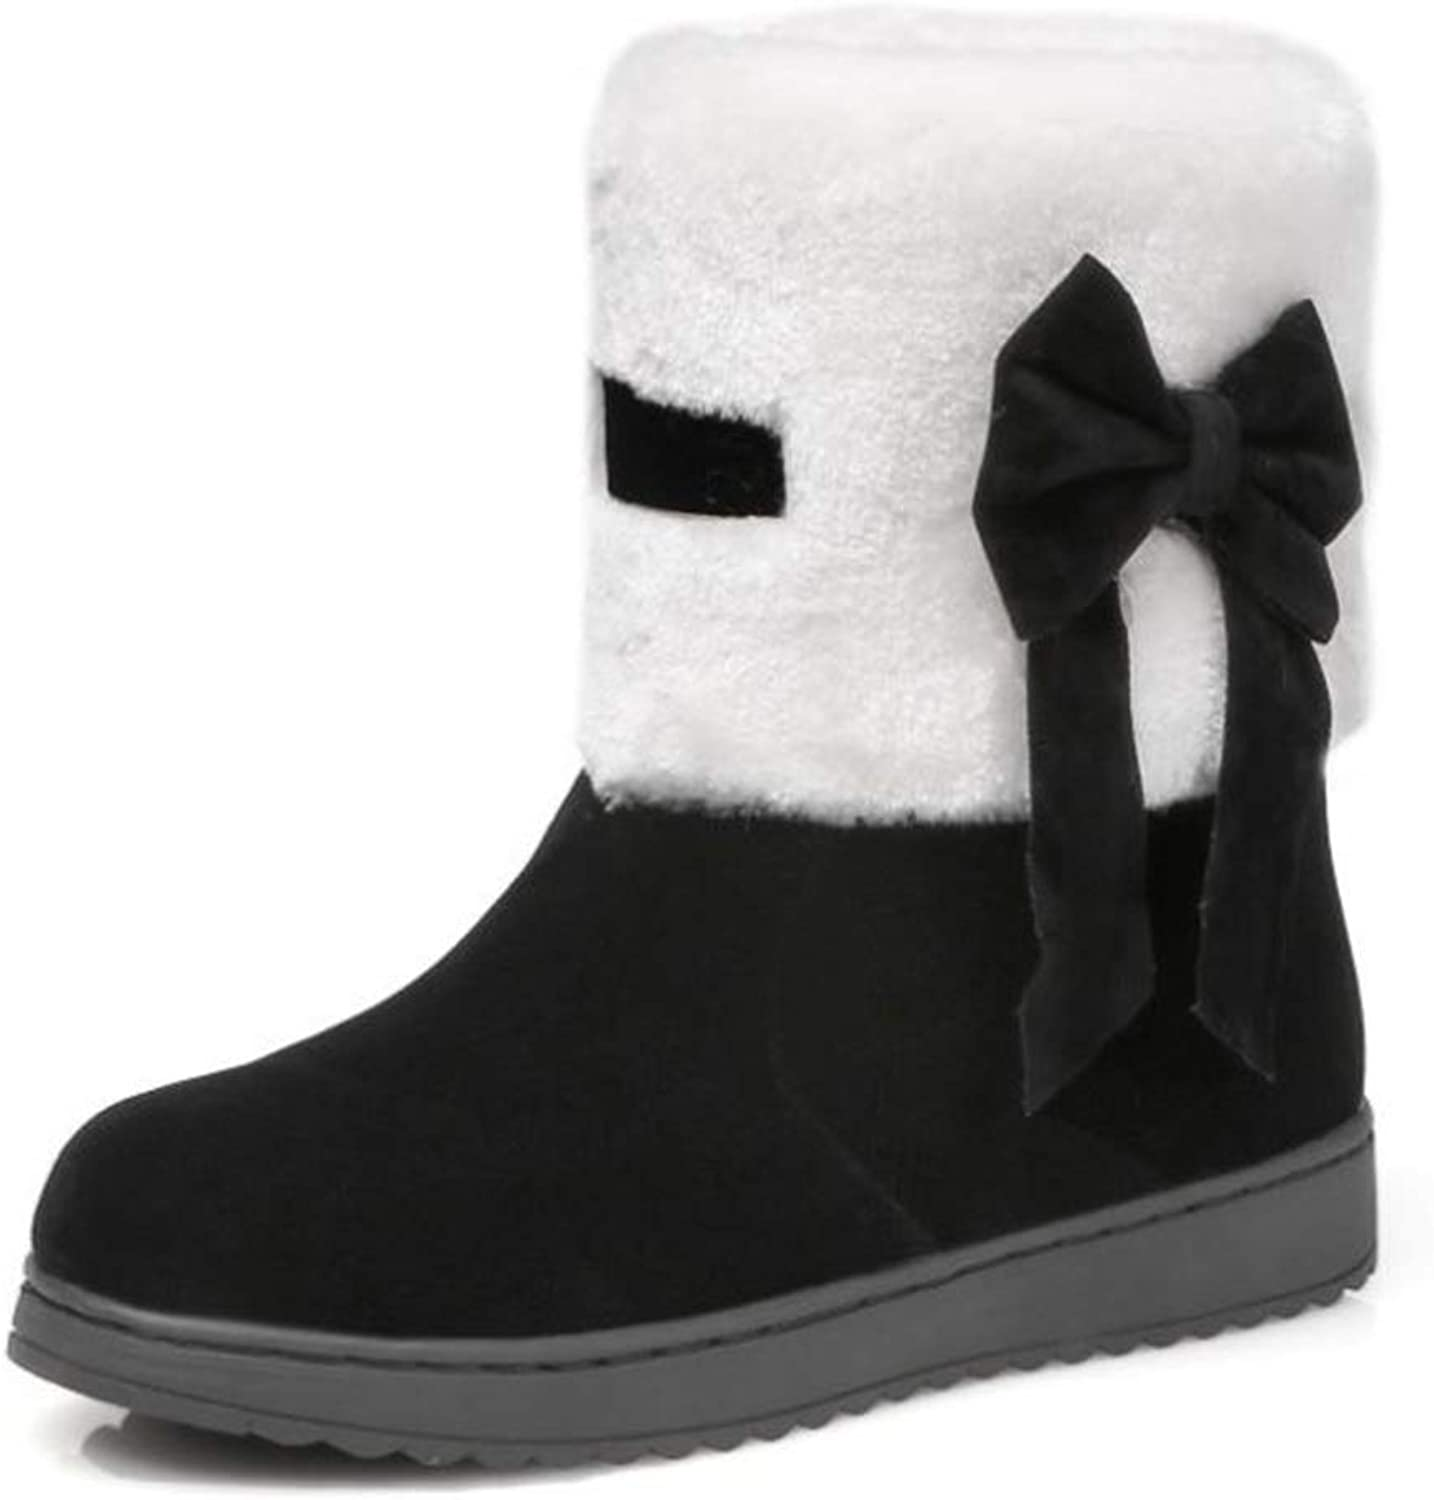 pink town Women's Winter Snow Boots Bowtie Slip on Daily Warm Ankle Boots